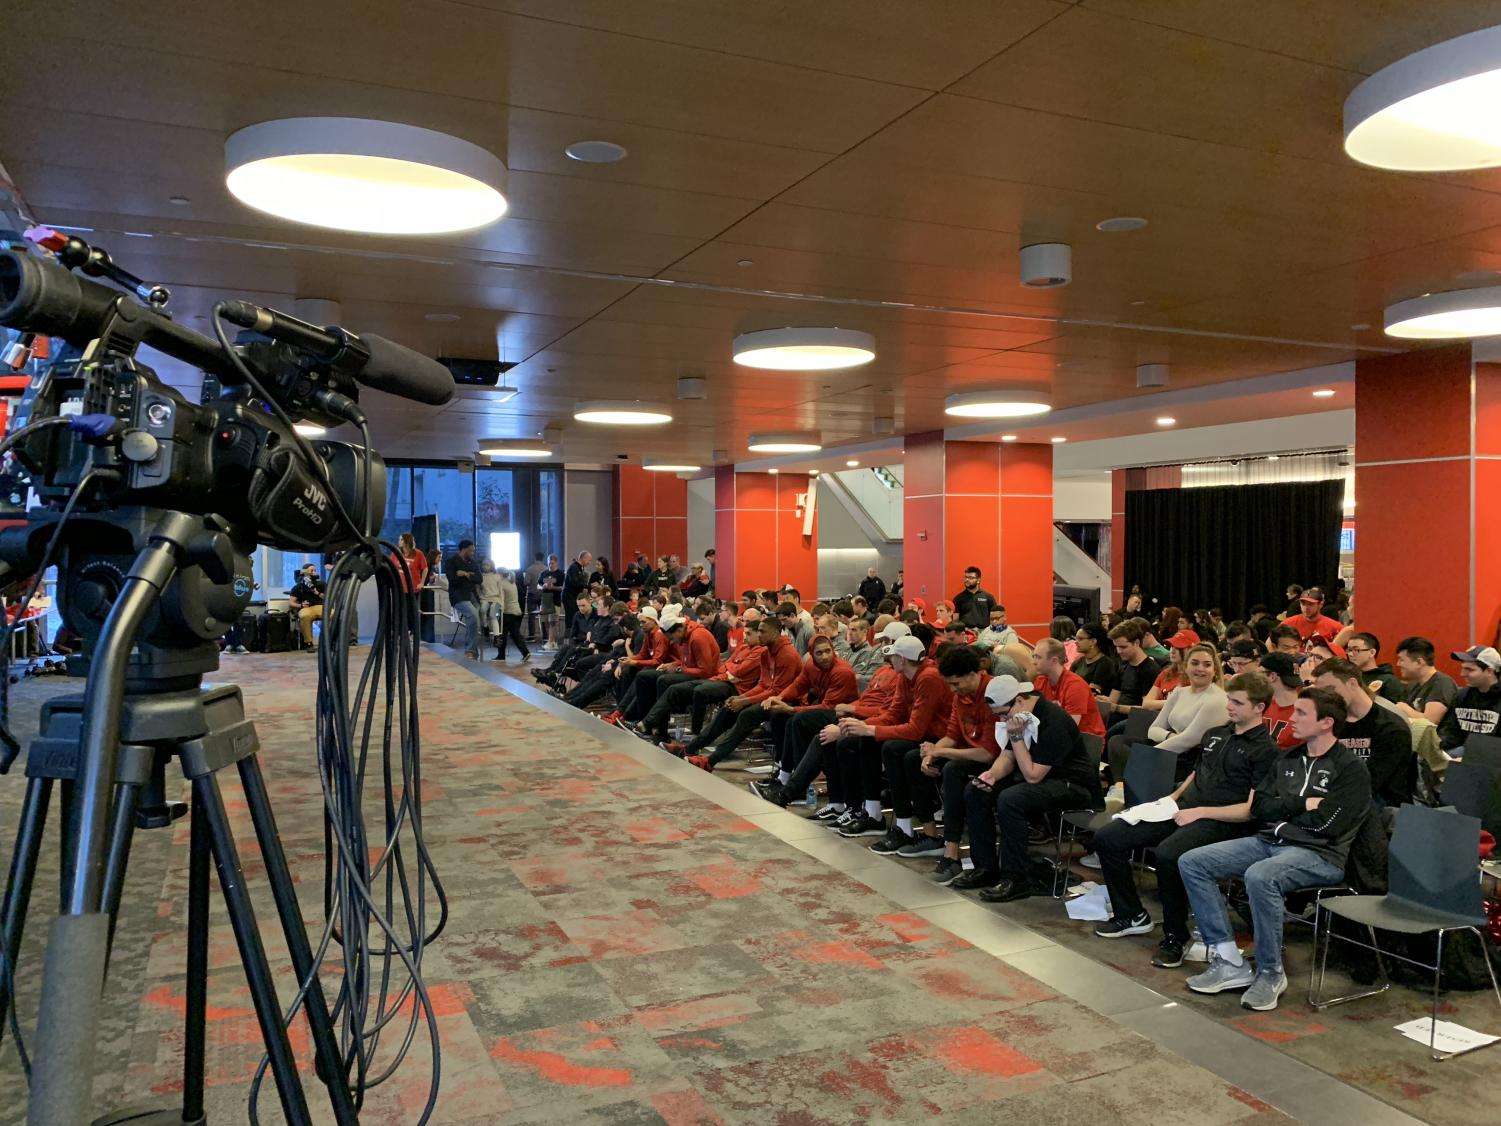 The Huskies awaited their first round matchup in Curry Student Center among supporters and the local media.